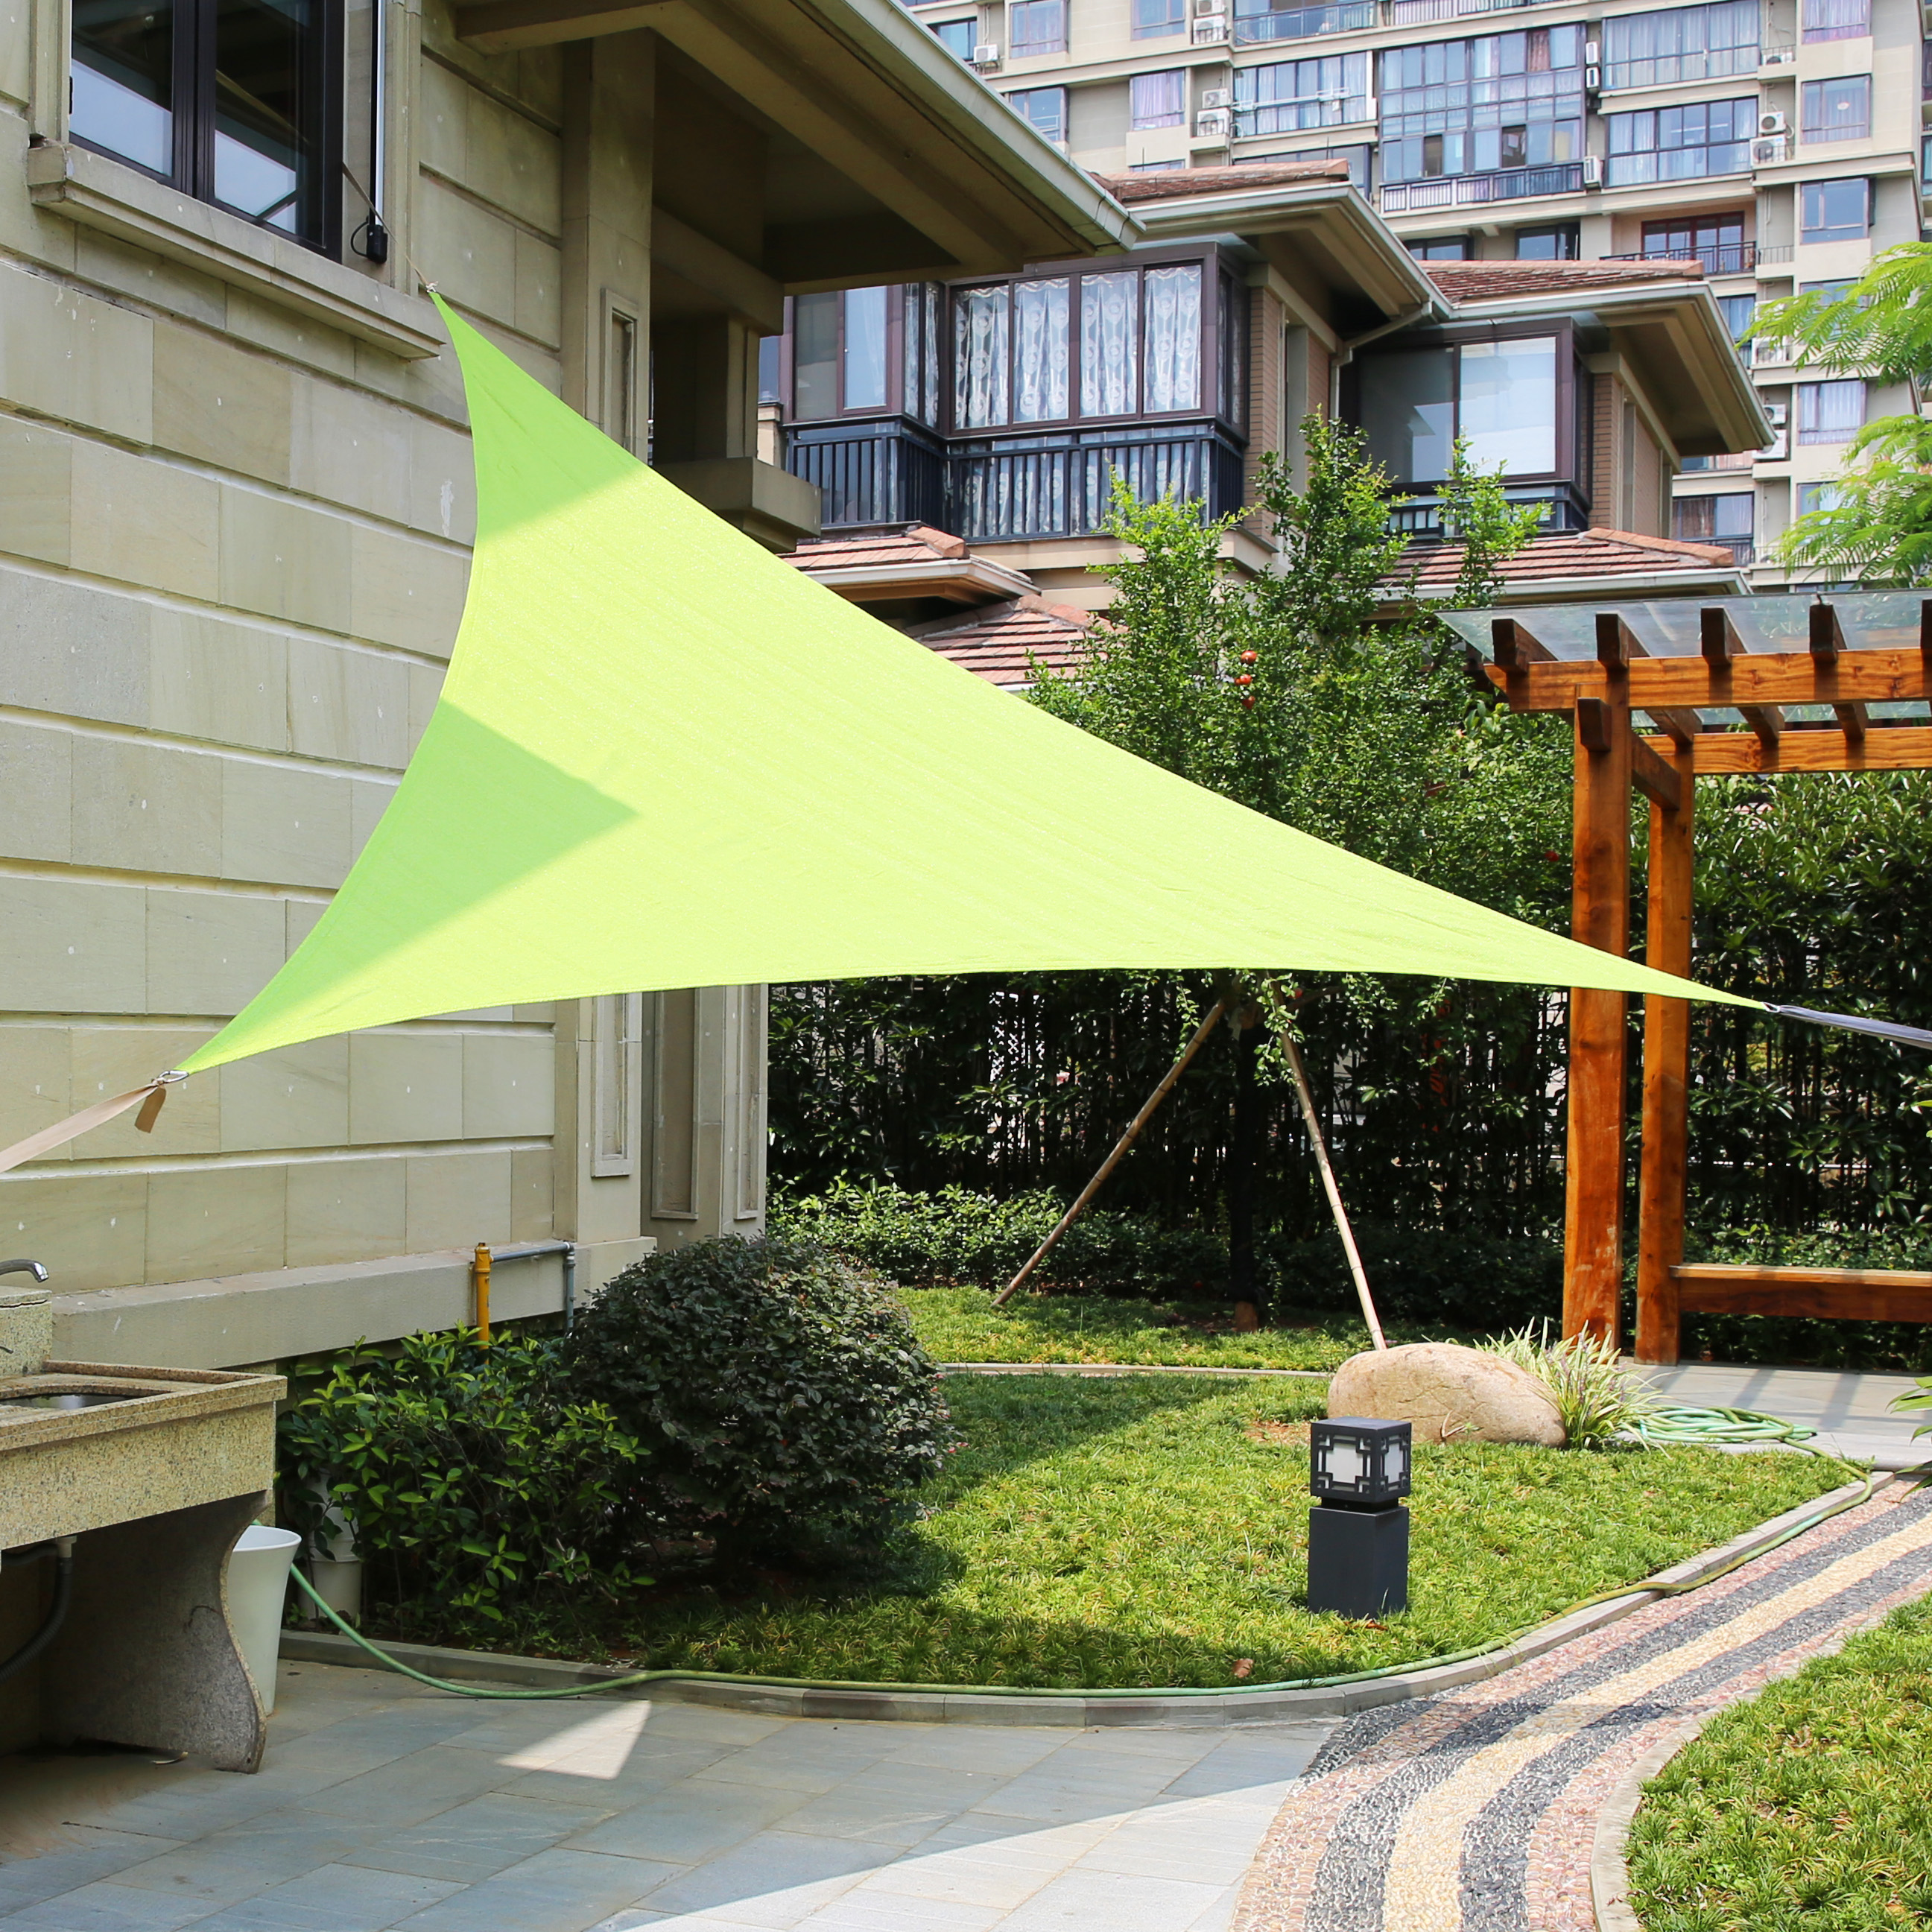 LyShade-12-039-Triangle-Sun-Shade-Sail-Canopy- & LyShade 12u0027 Triangle Sun Shade Sail Canopy - UV Block Patio Lawn ...